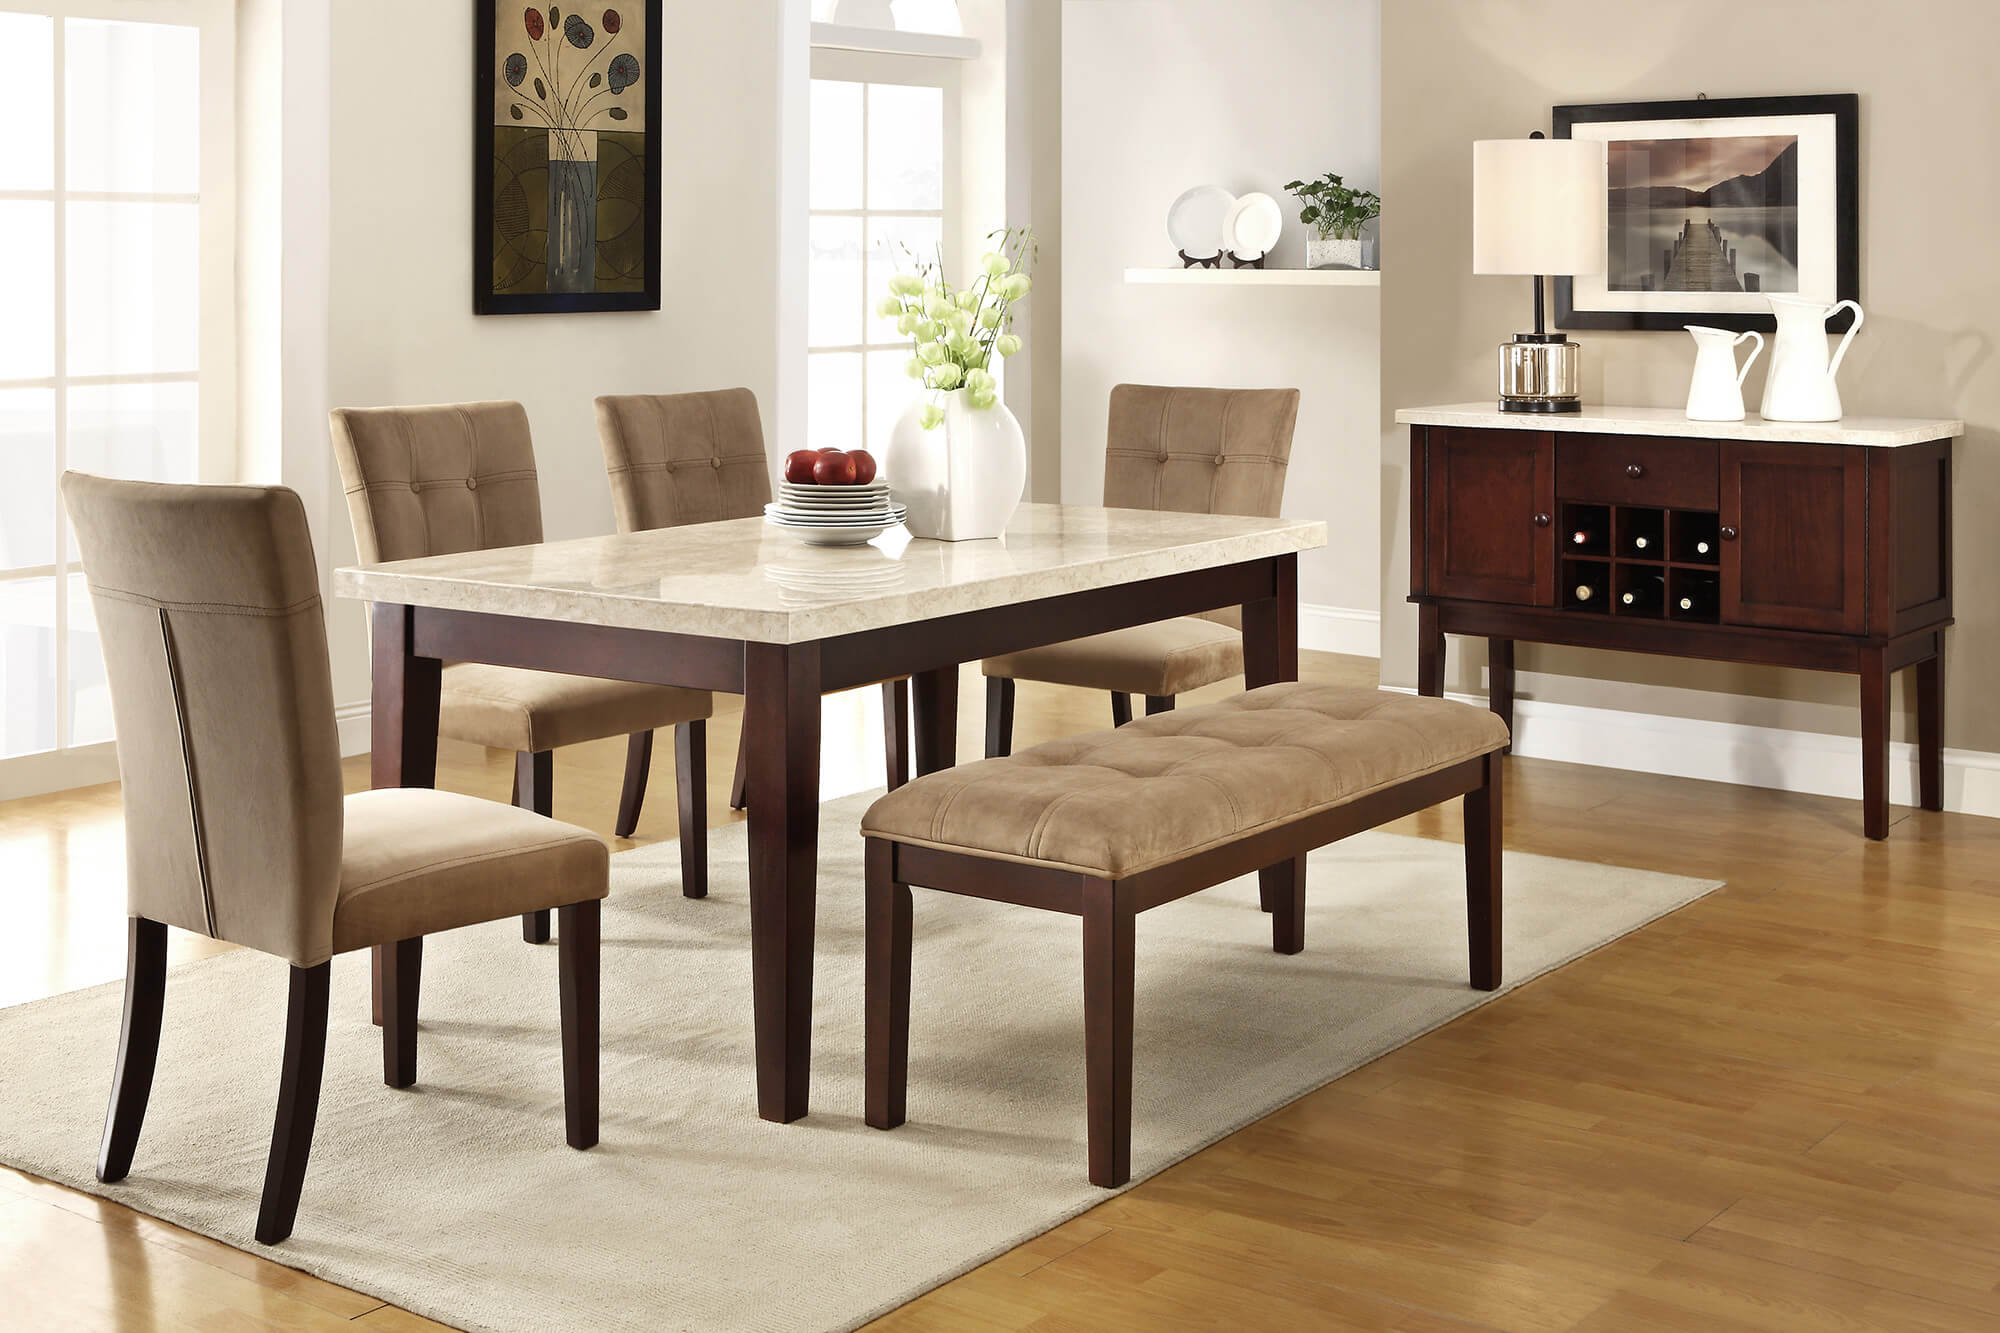 Padded Benches Living Room 26 Big Small Dining Room Sets With Bench Seating